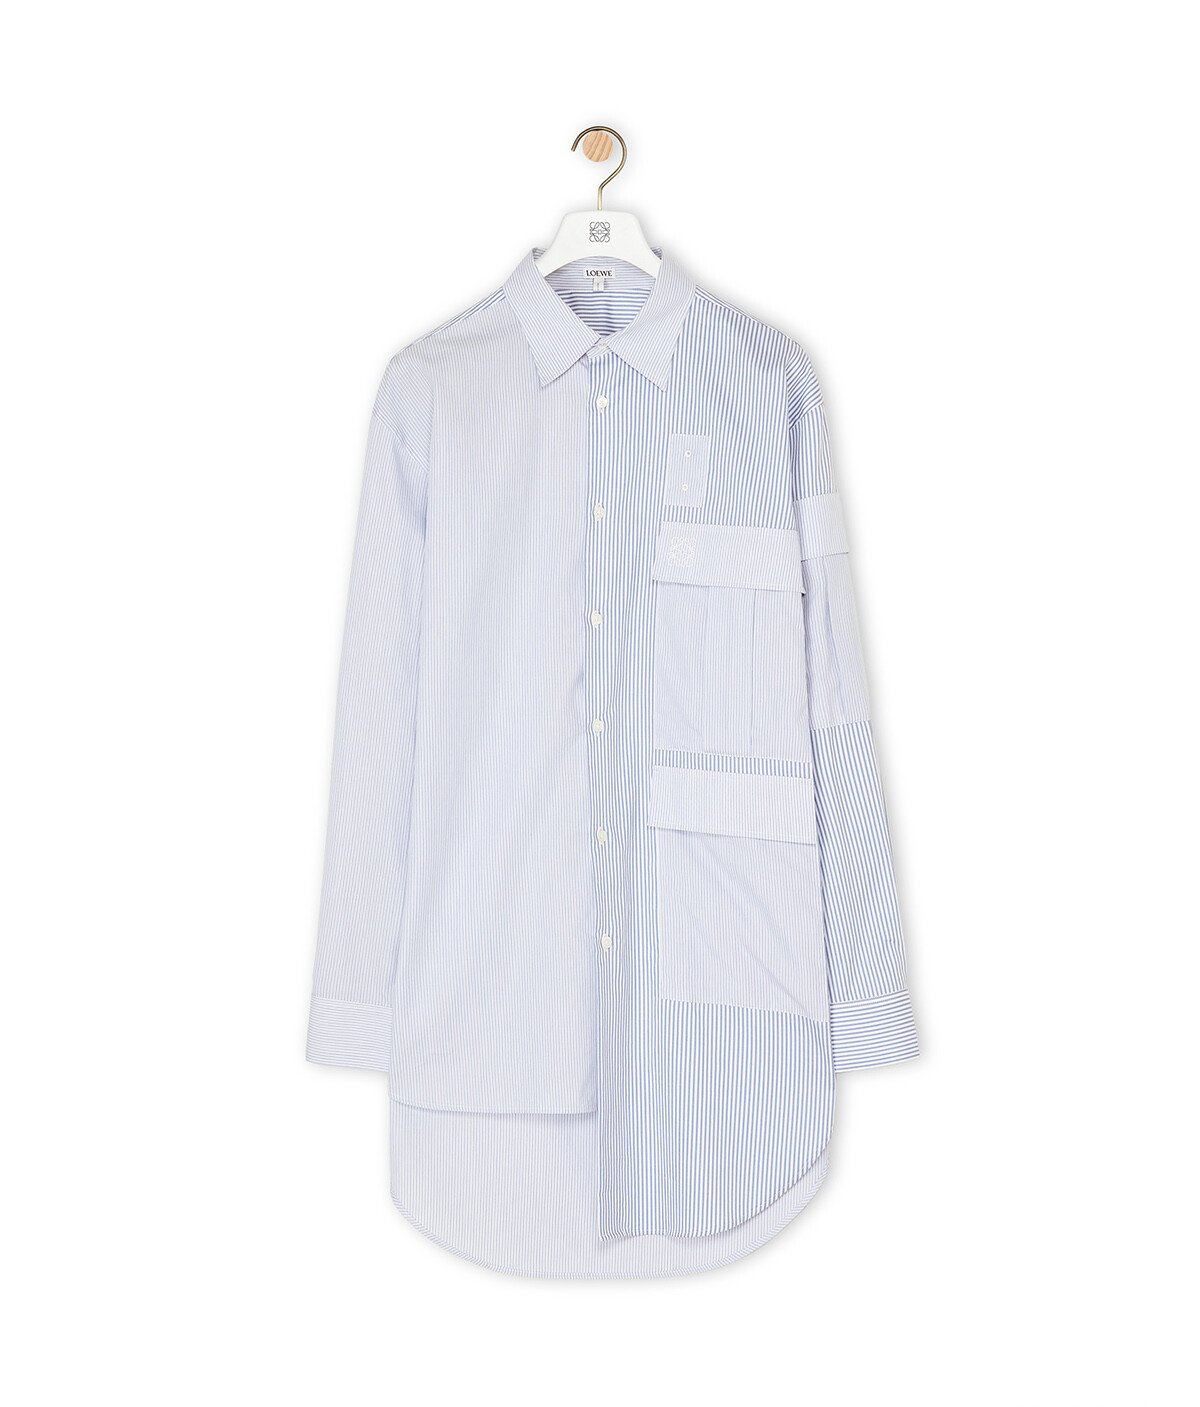 LOEWE Multipocket Shirt white/blue front